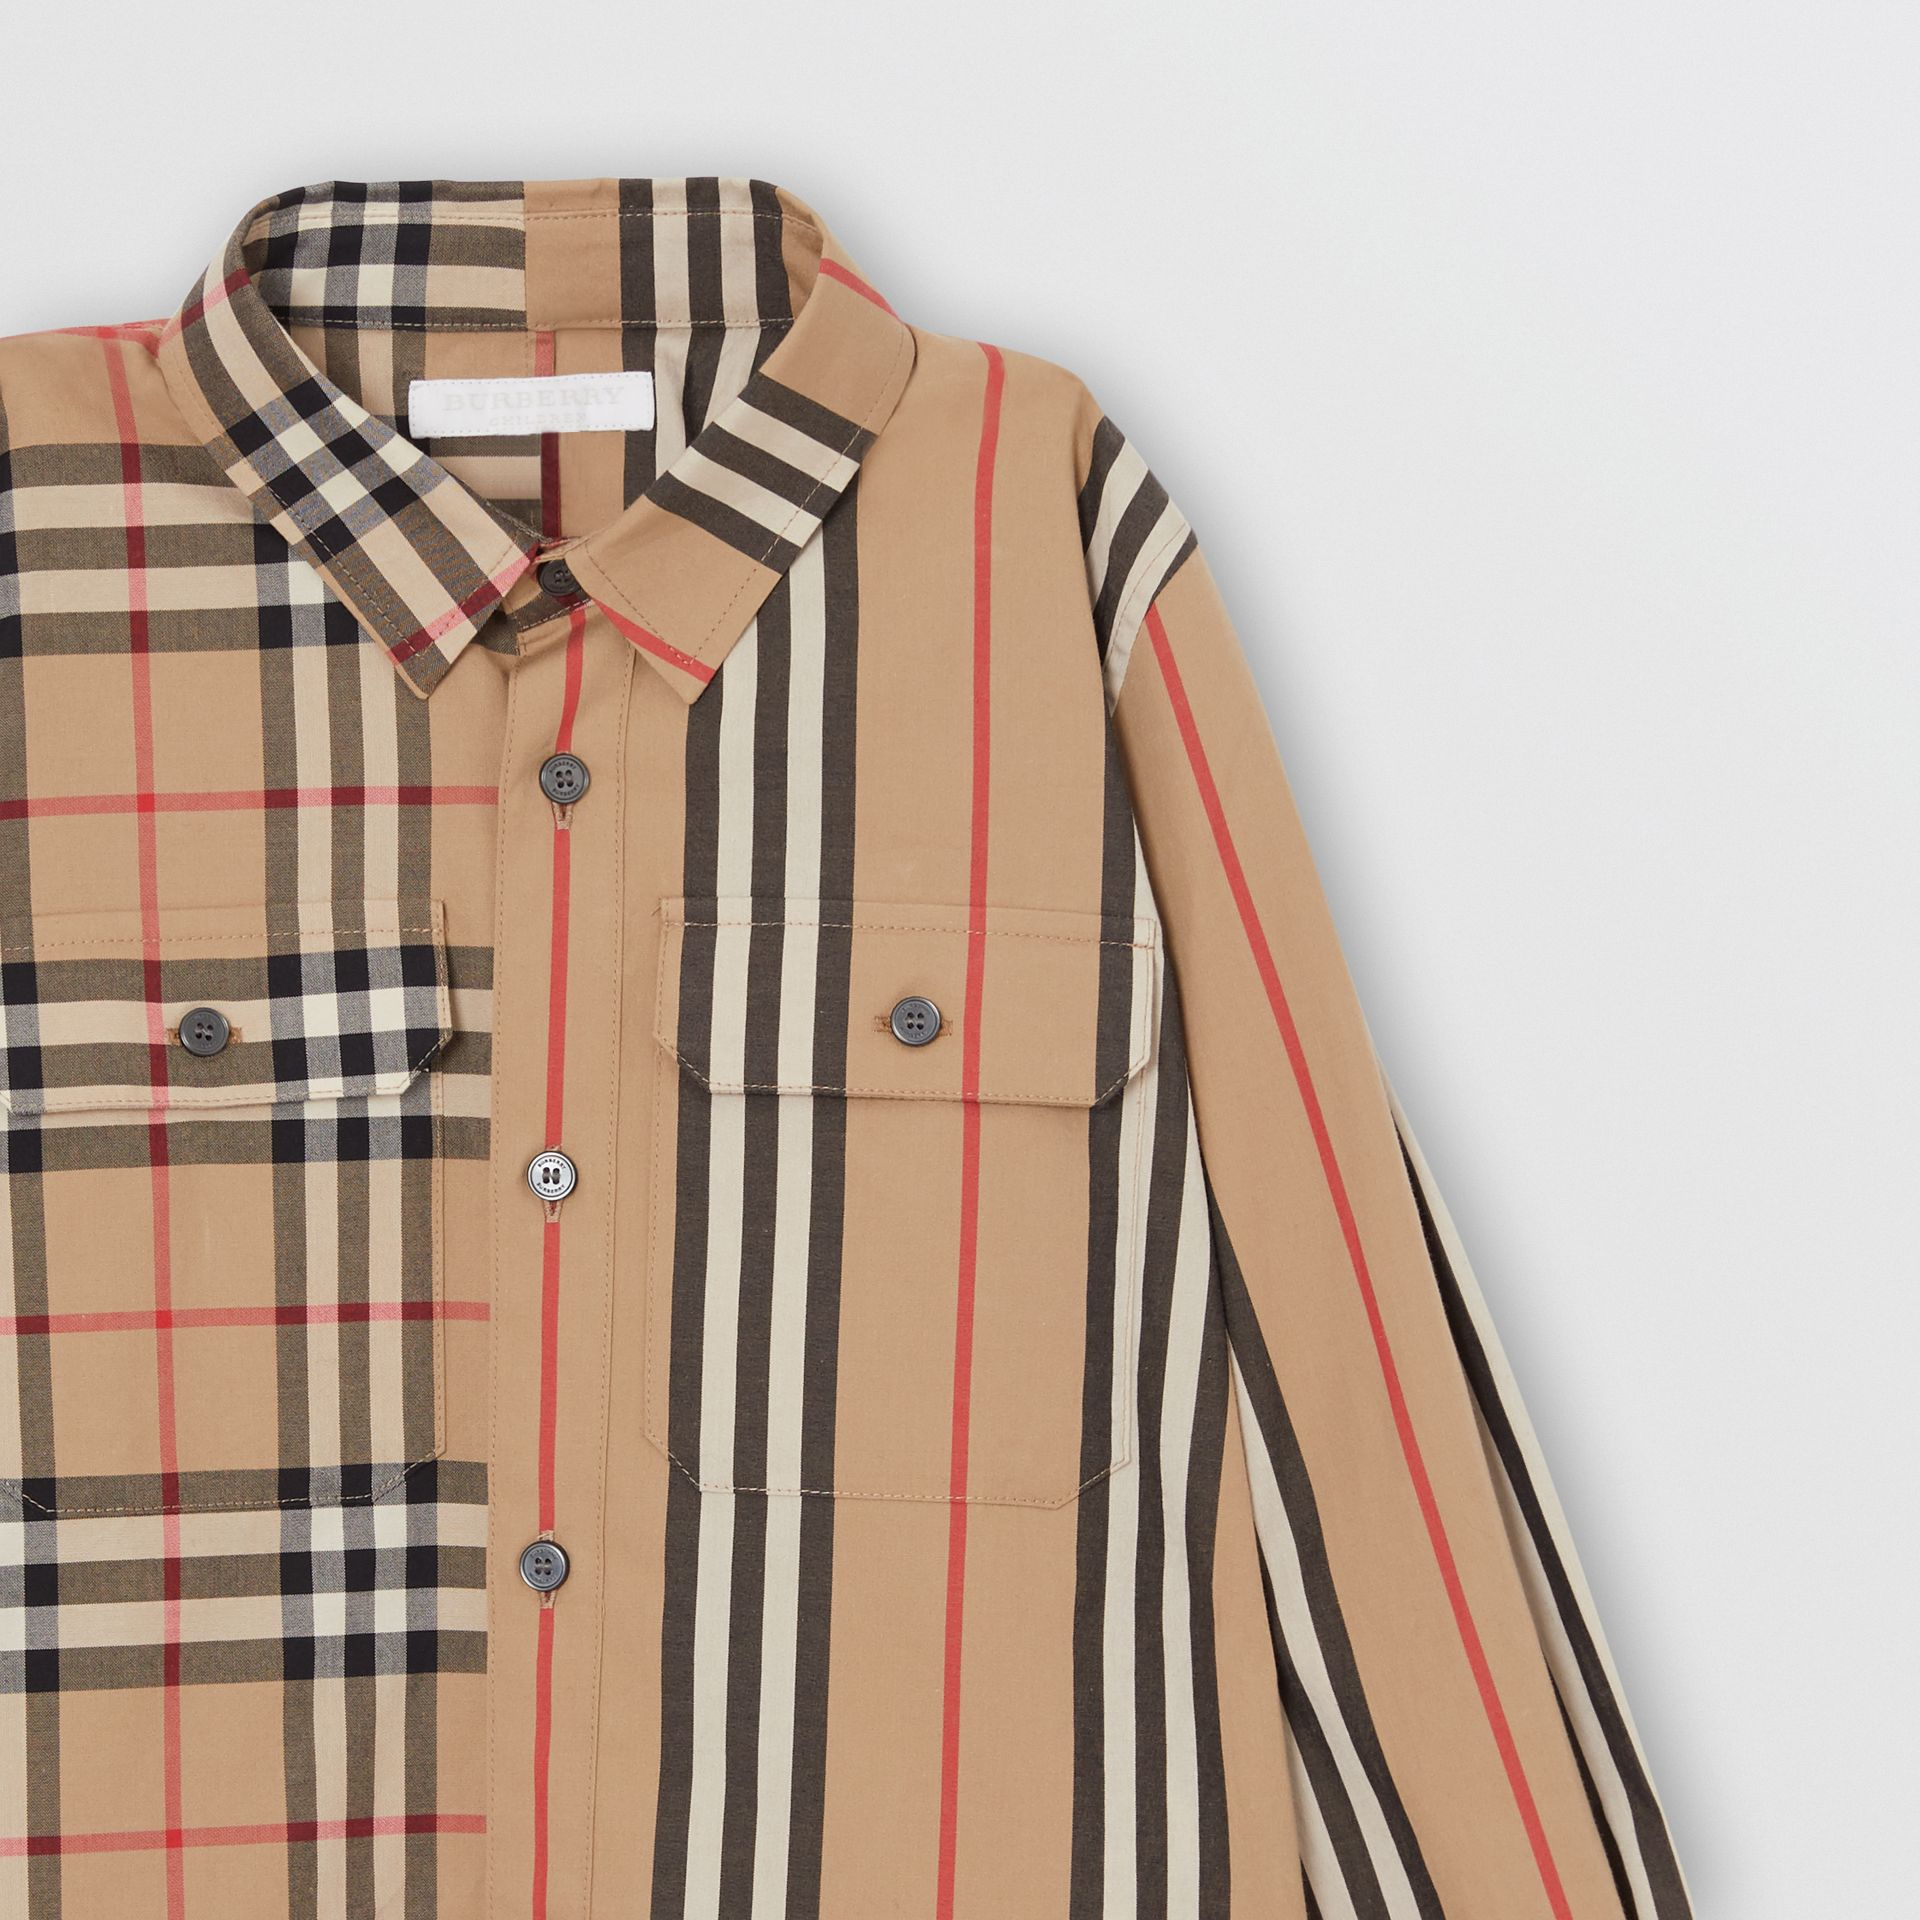 Panelled Vintage Check and Icon Stripe Cotton Shirt in Archive Beige | Burberry Singapore - gallery image 4